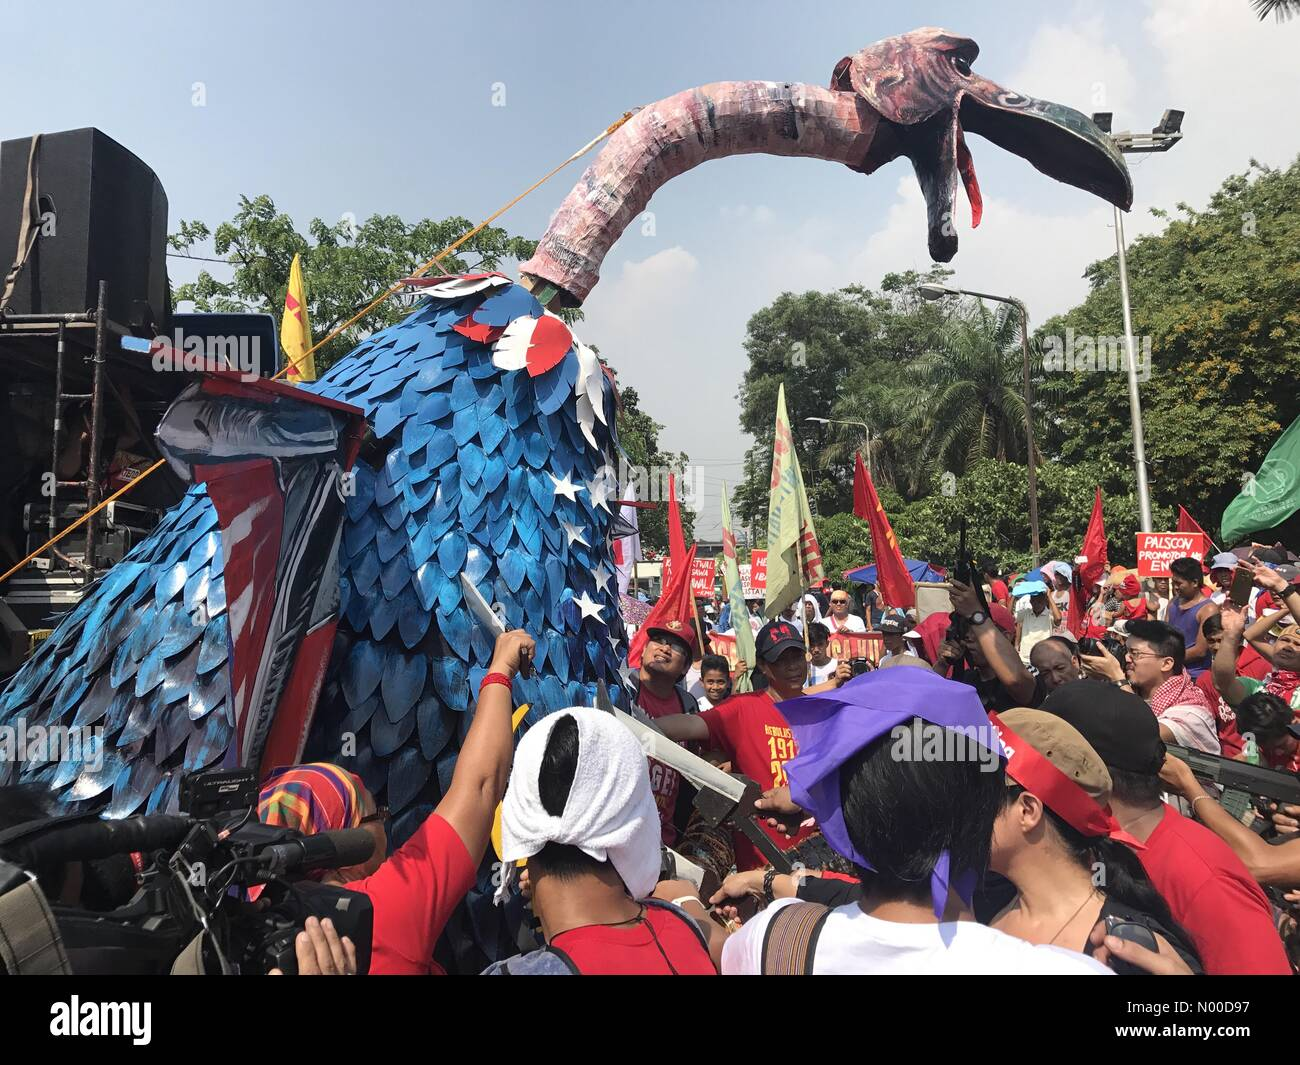 Magallanes Dr, Ermita, Manila, Metro Manila, Philippines. 01st May, 2017. On Labor's Day, militants made an - Stock Image